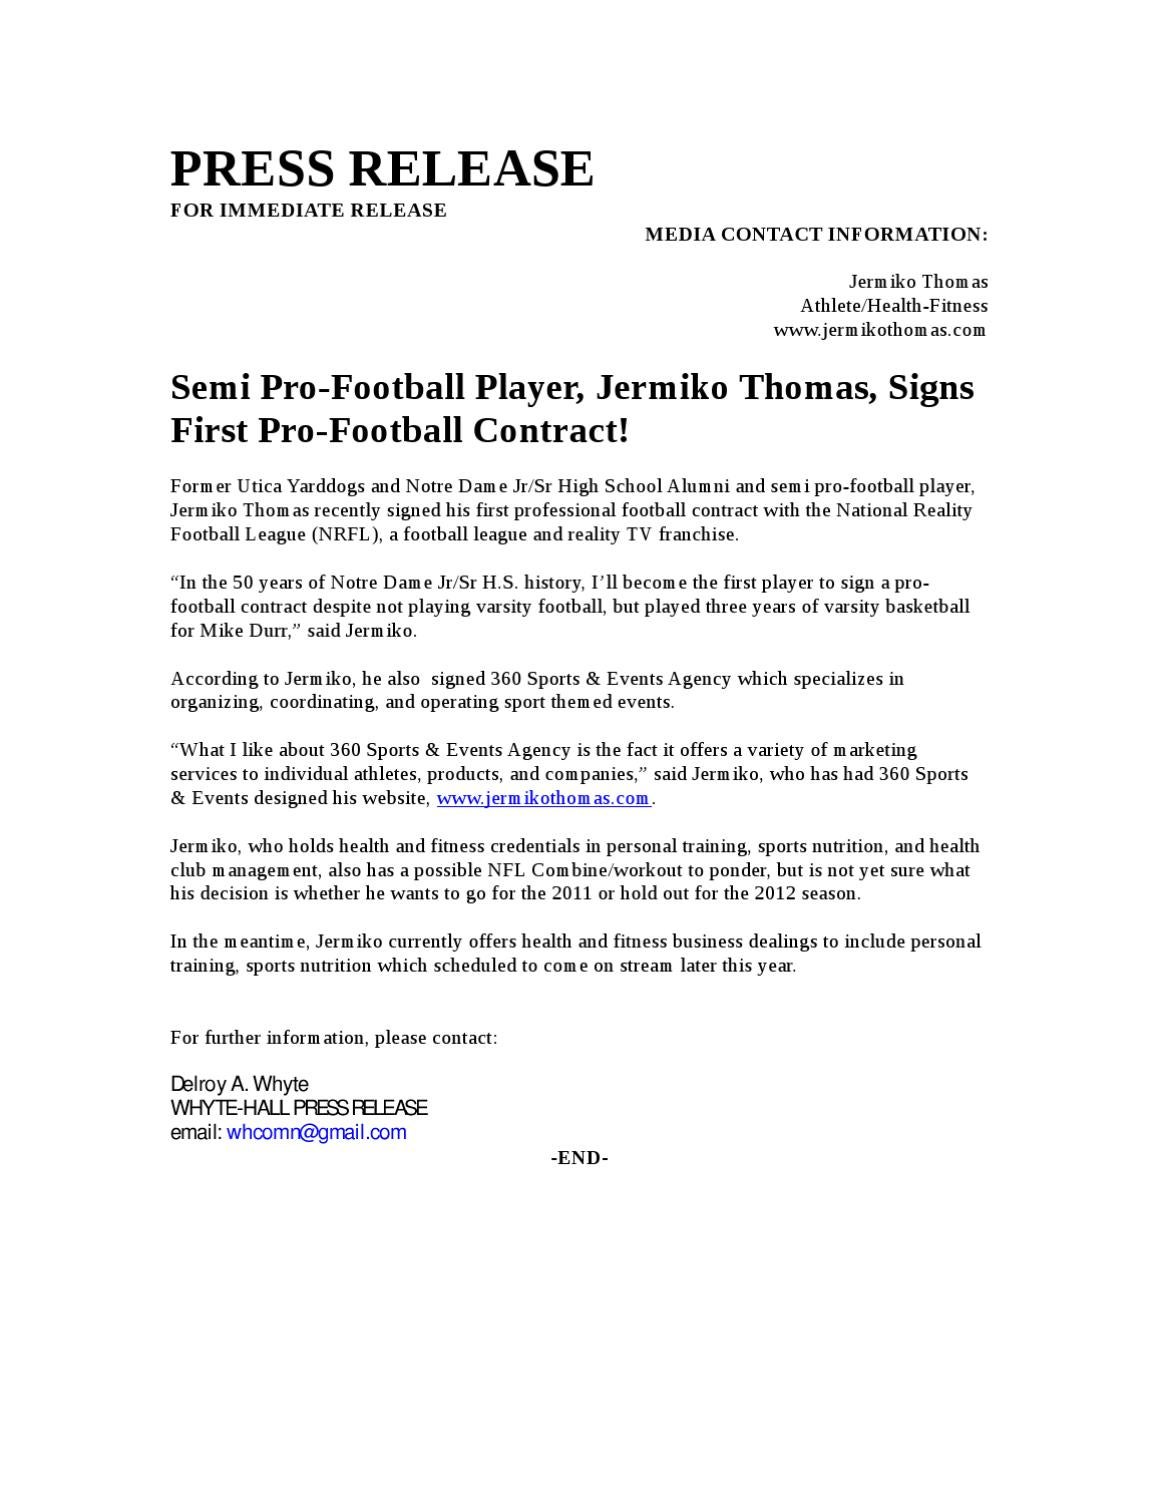 Semi pro football player signs first pro football contract for Football contract template